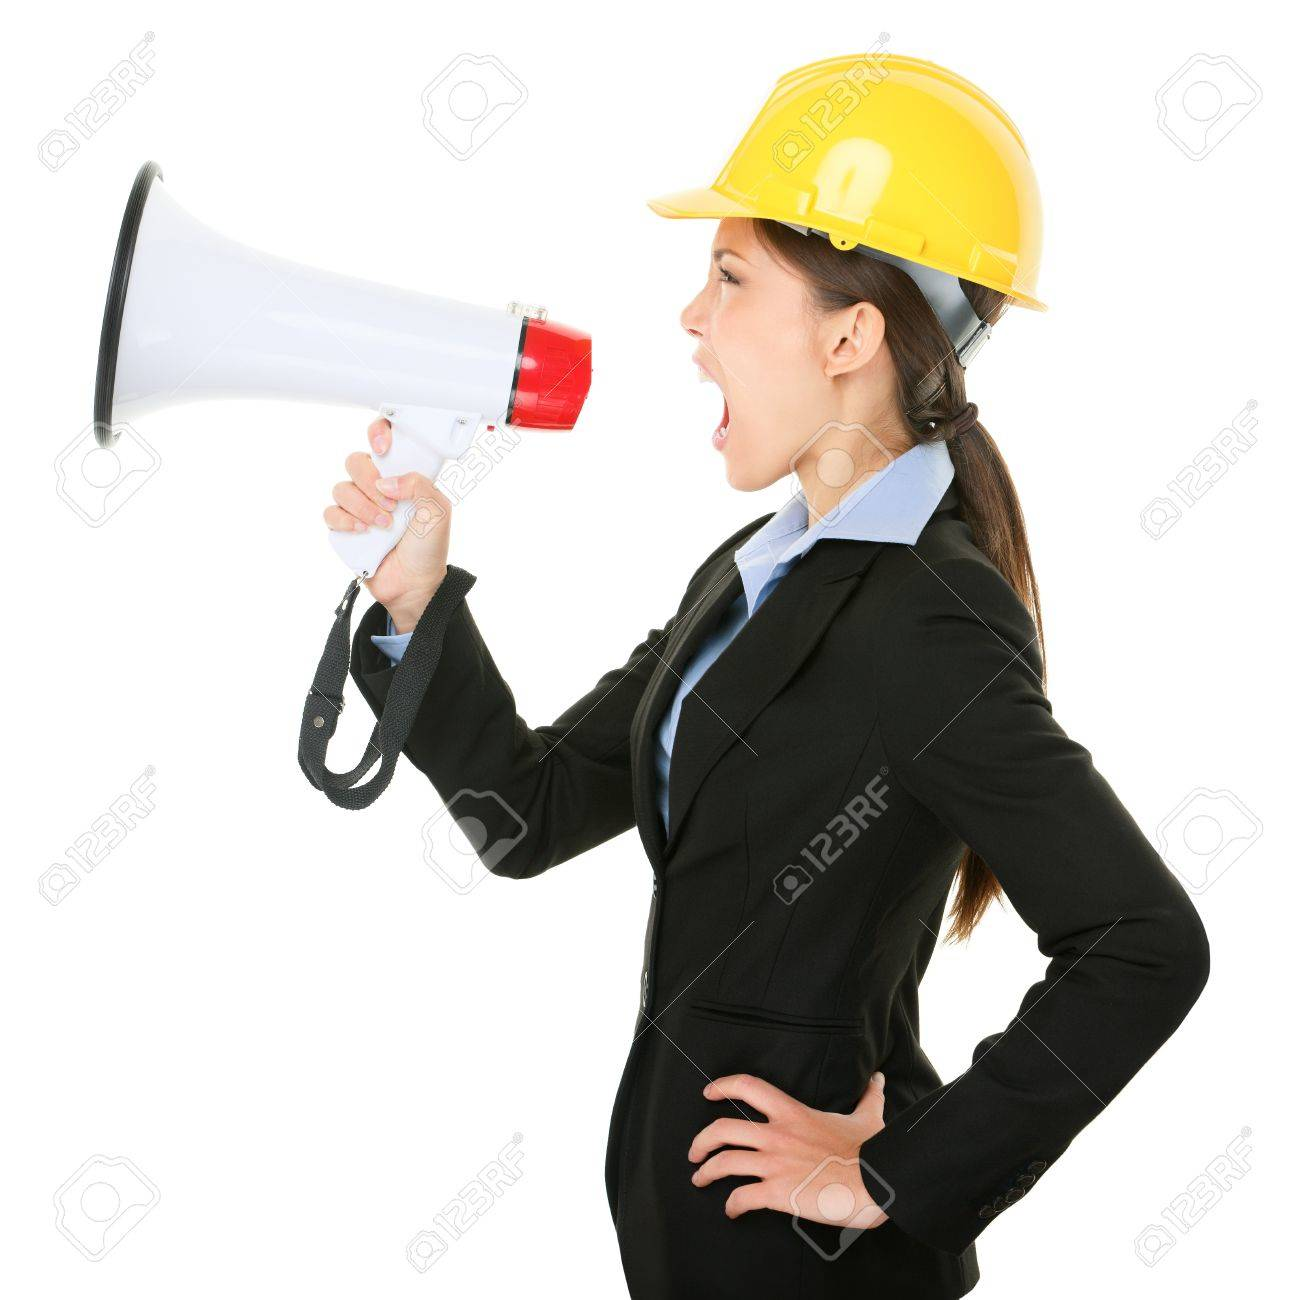 Megaphone screaming engineer contractor business woman with hard hat yelling angry Stock Photo - 18906229